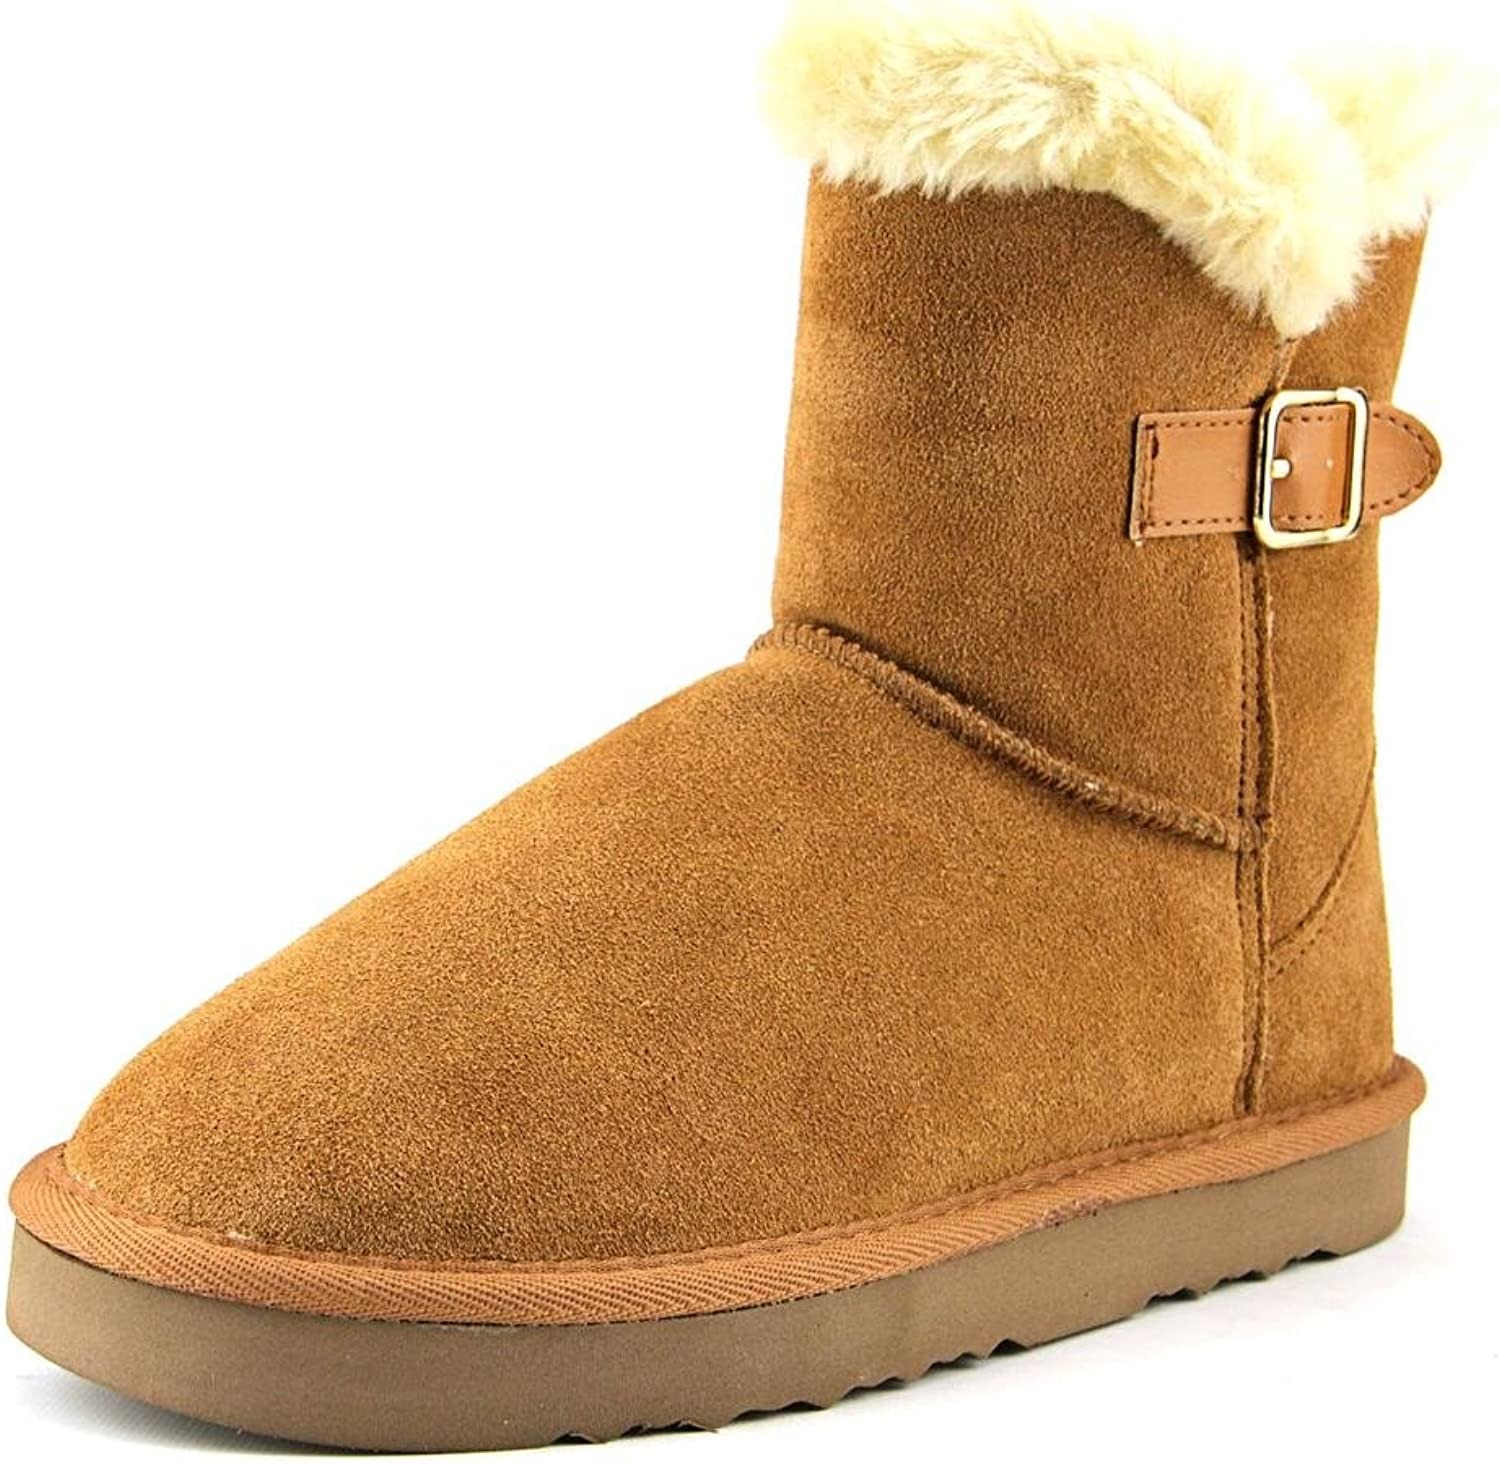 Style & Co.. Womens TINY2 Suede Round Toe Ankle Cold Weather, Chestnut, Size 11.0